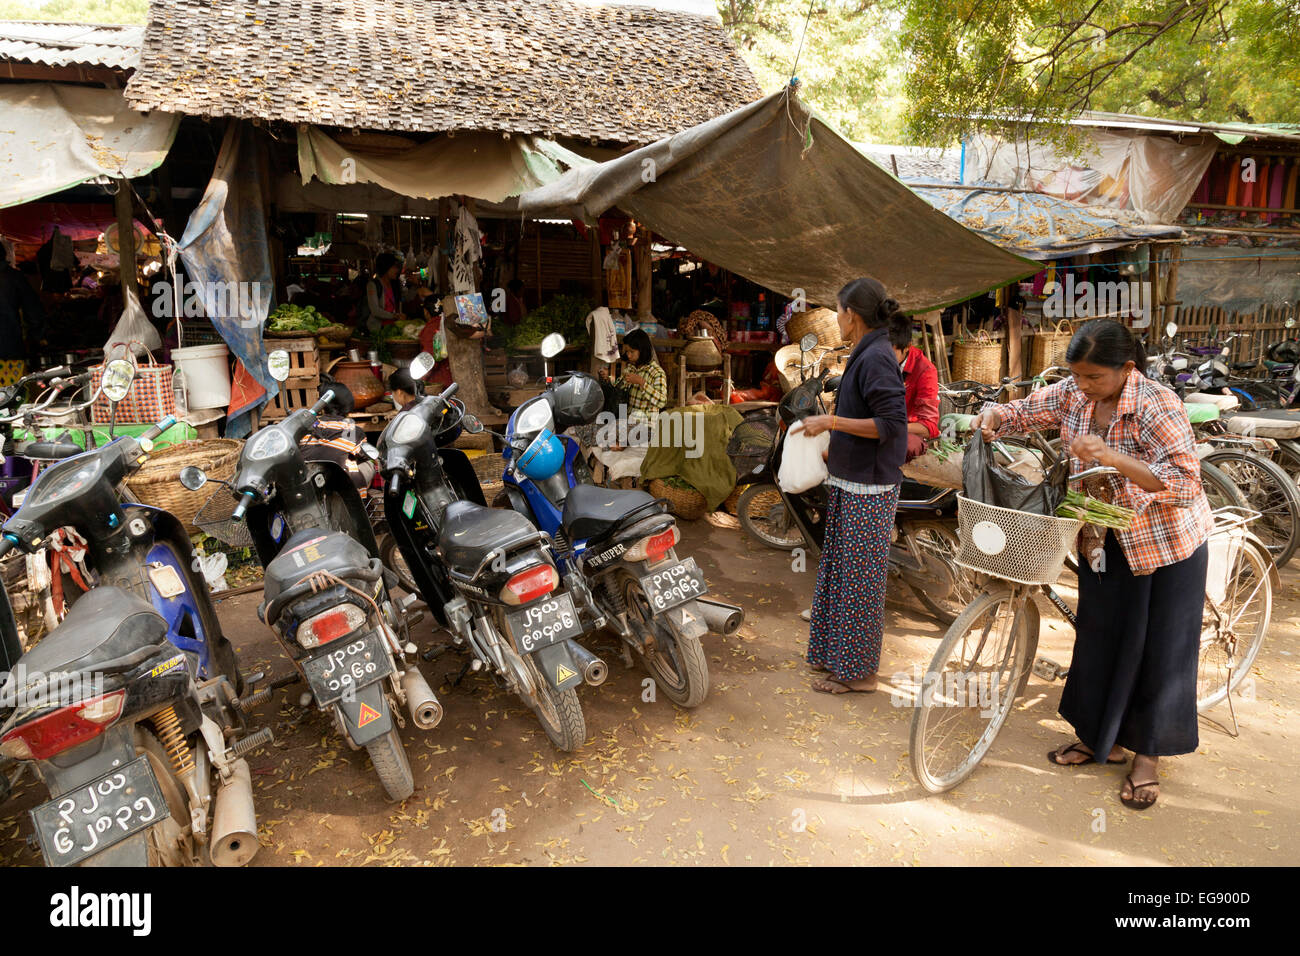 motorcycles and bicycles outside a village market, Bagan, Myanmar ( Burma ), Asia - Stock Image